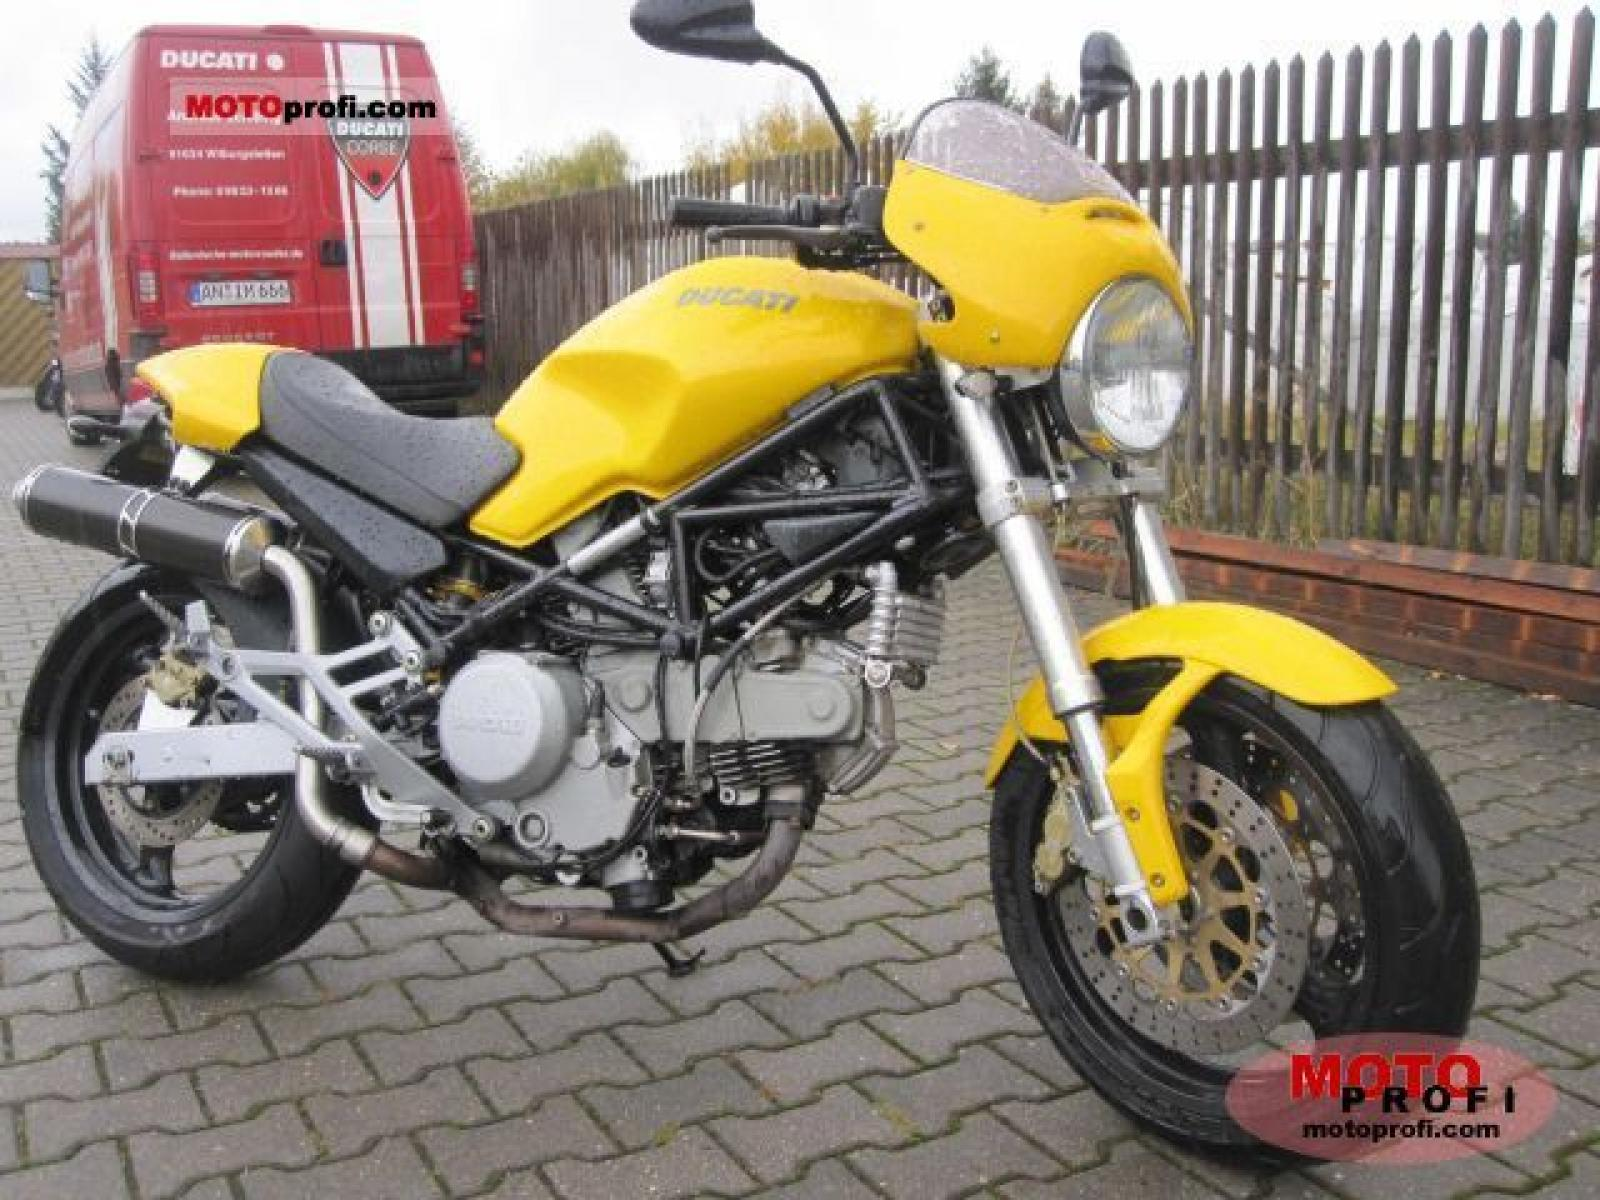 2000 ducati monster 750 pics specs and information. Black Bedroom Furniture Sets. Home Design Ideas